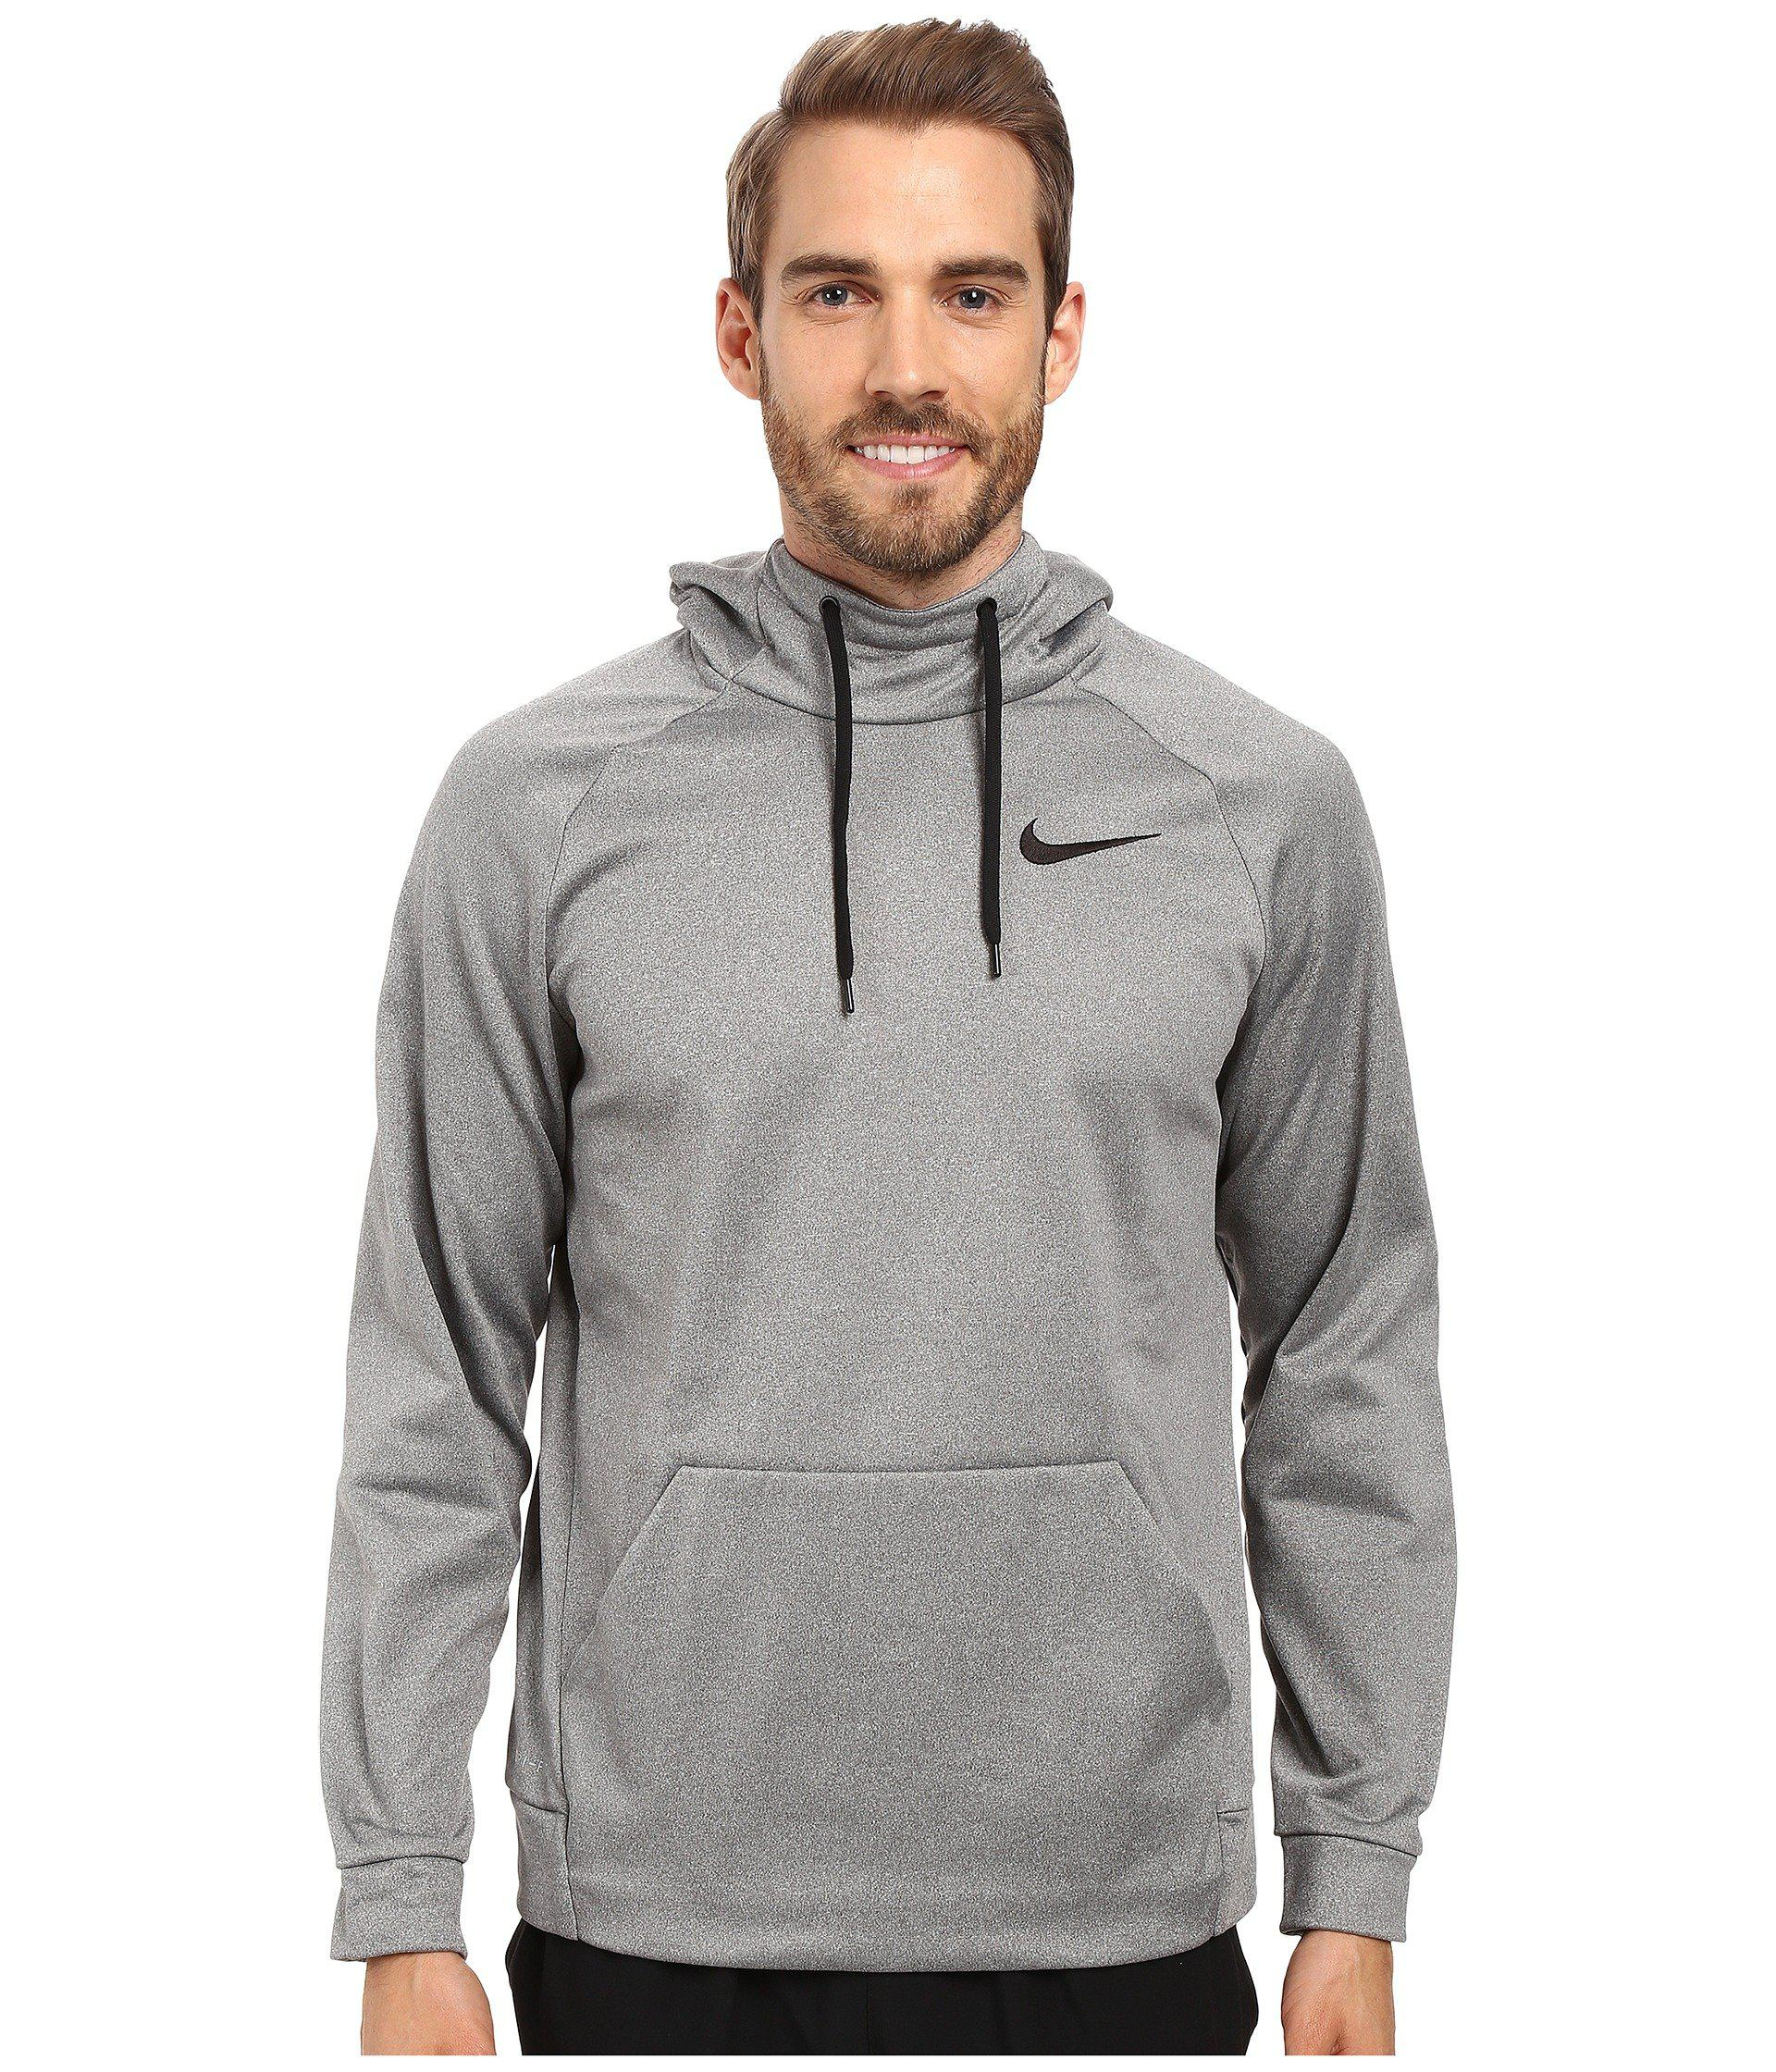 f6c17ad35a5 Nike Therma Pullover Training Hoodie in Black for Men - Lyst